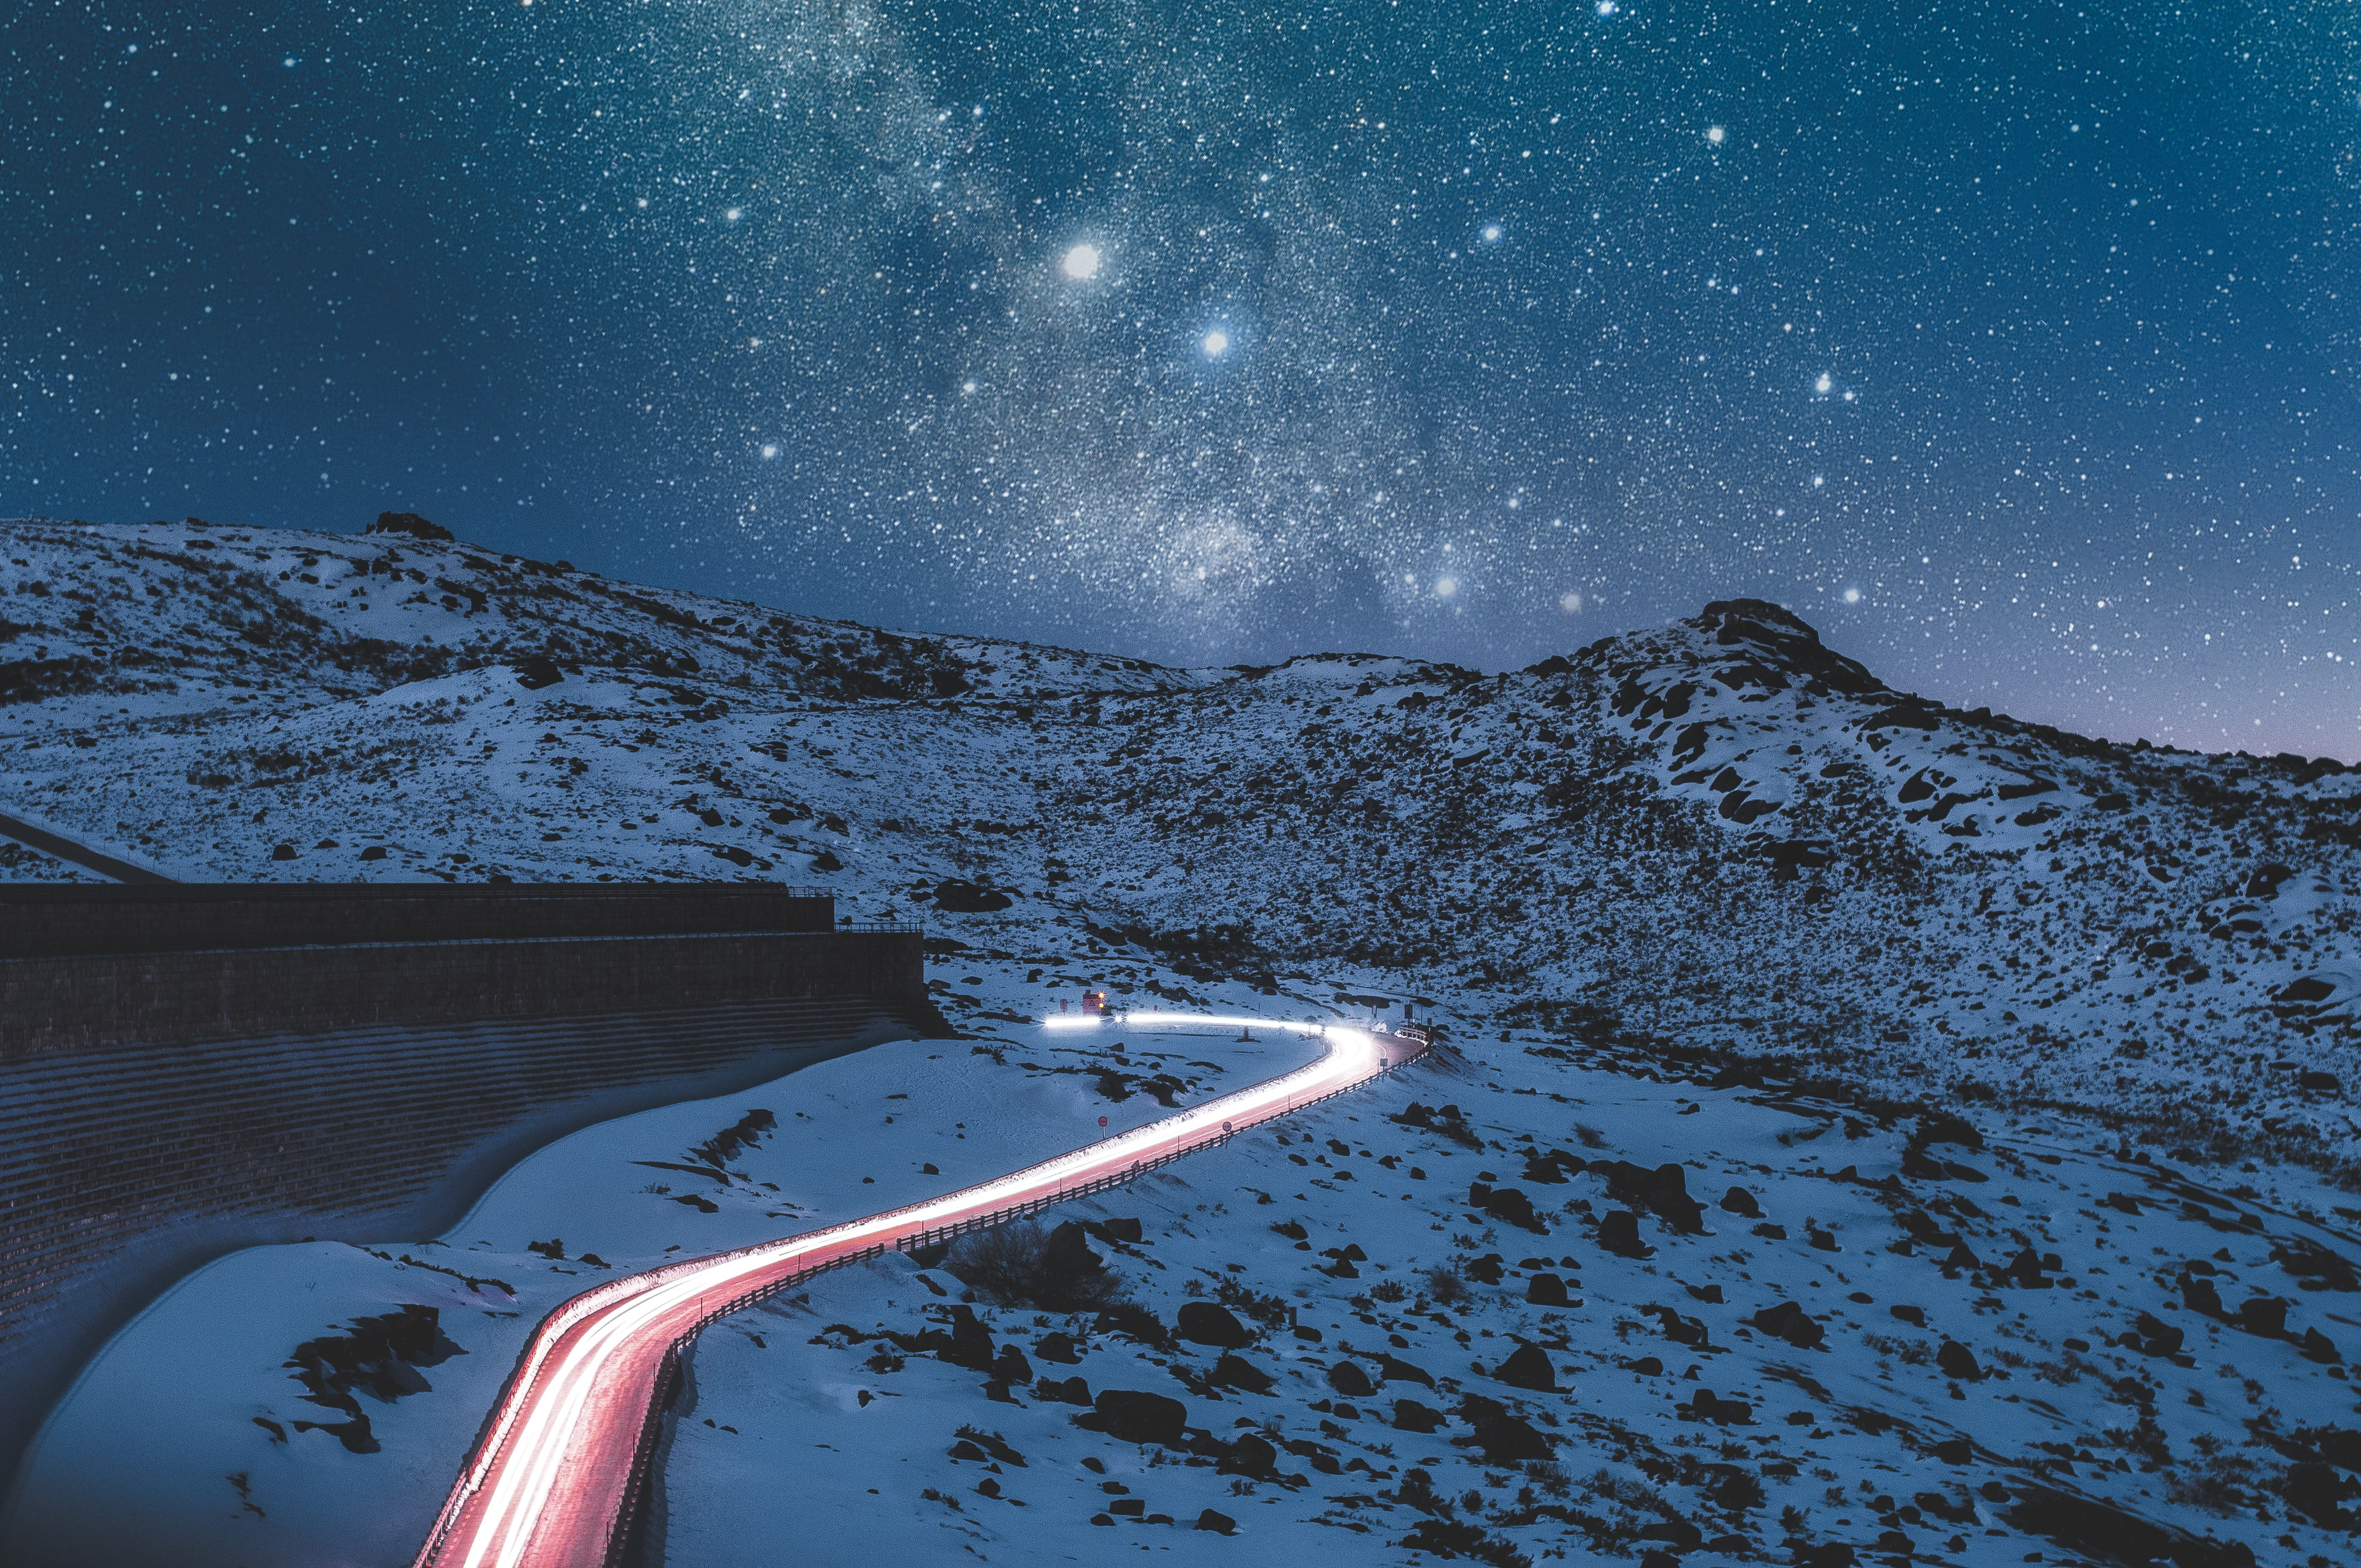 A brightly lit route through a cold, dark landscape. Follow that path!